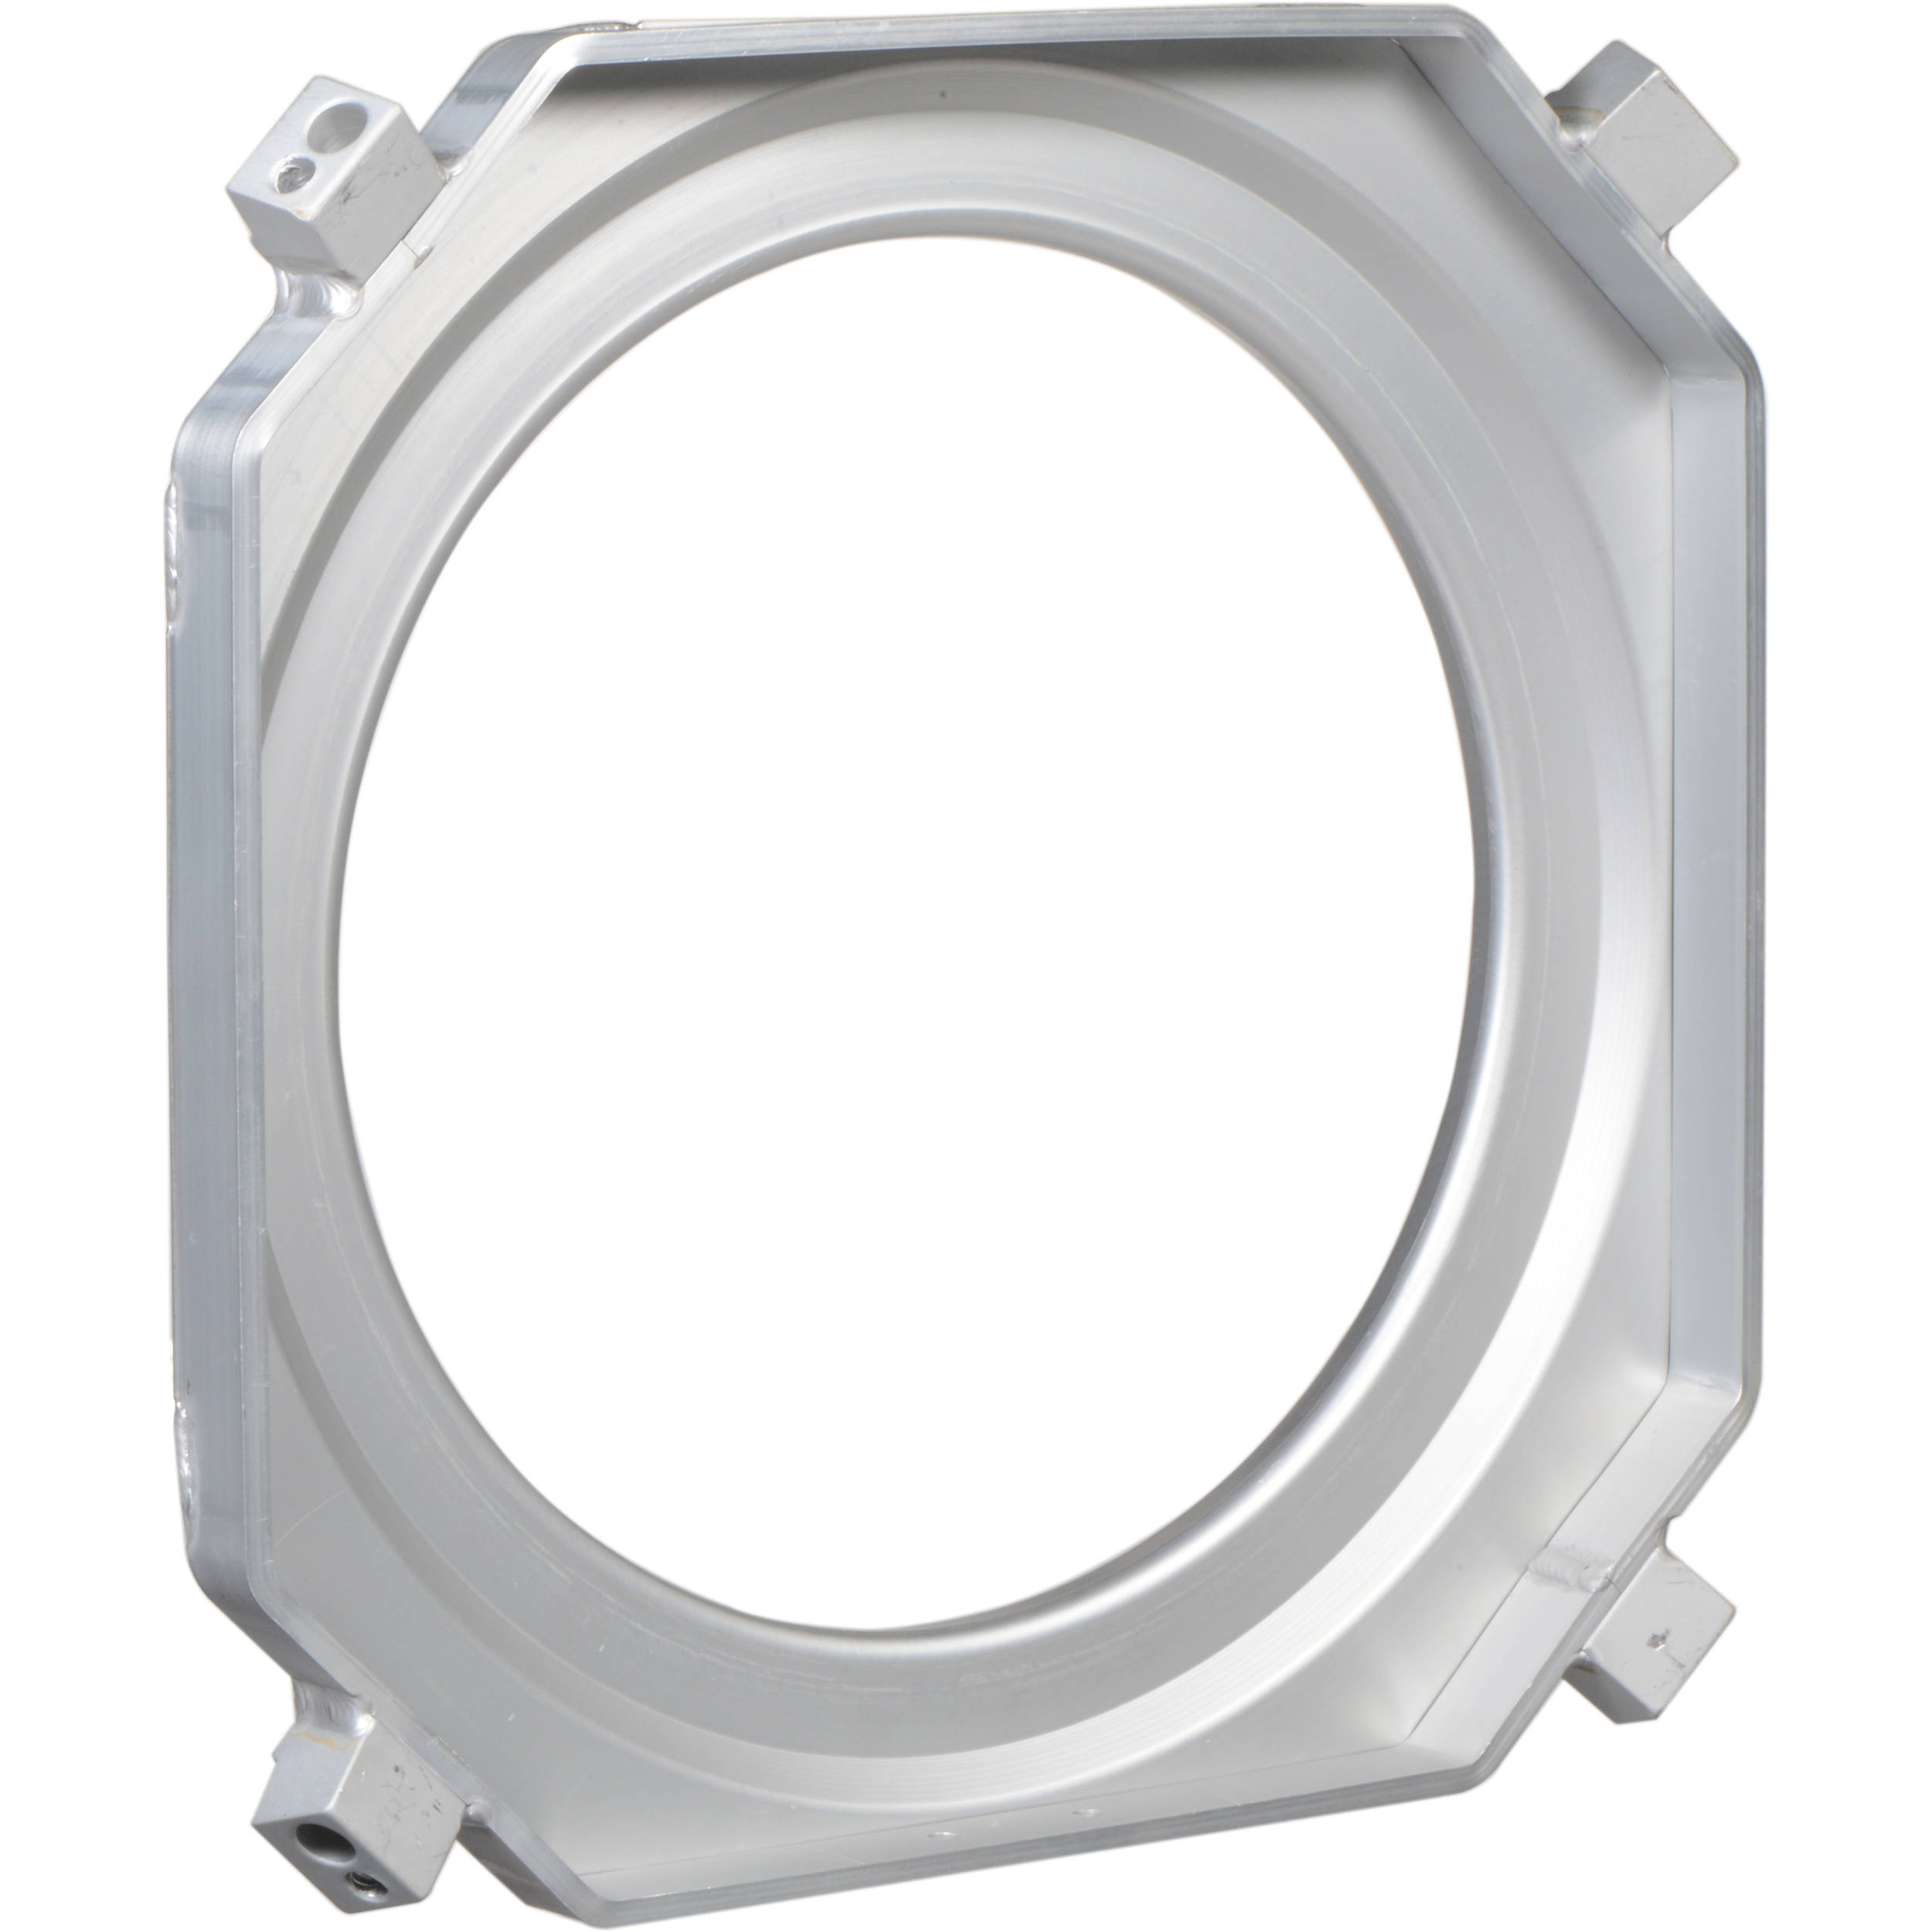 13.5″ Speed Ring for Arri M18